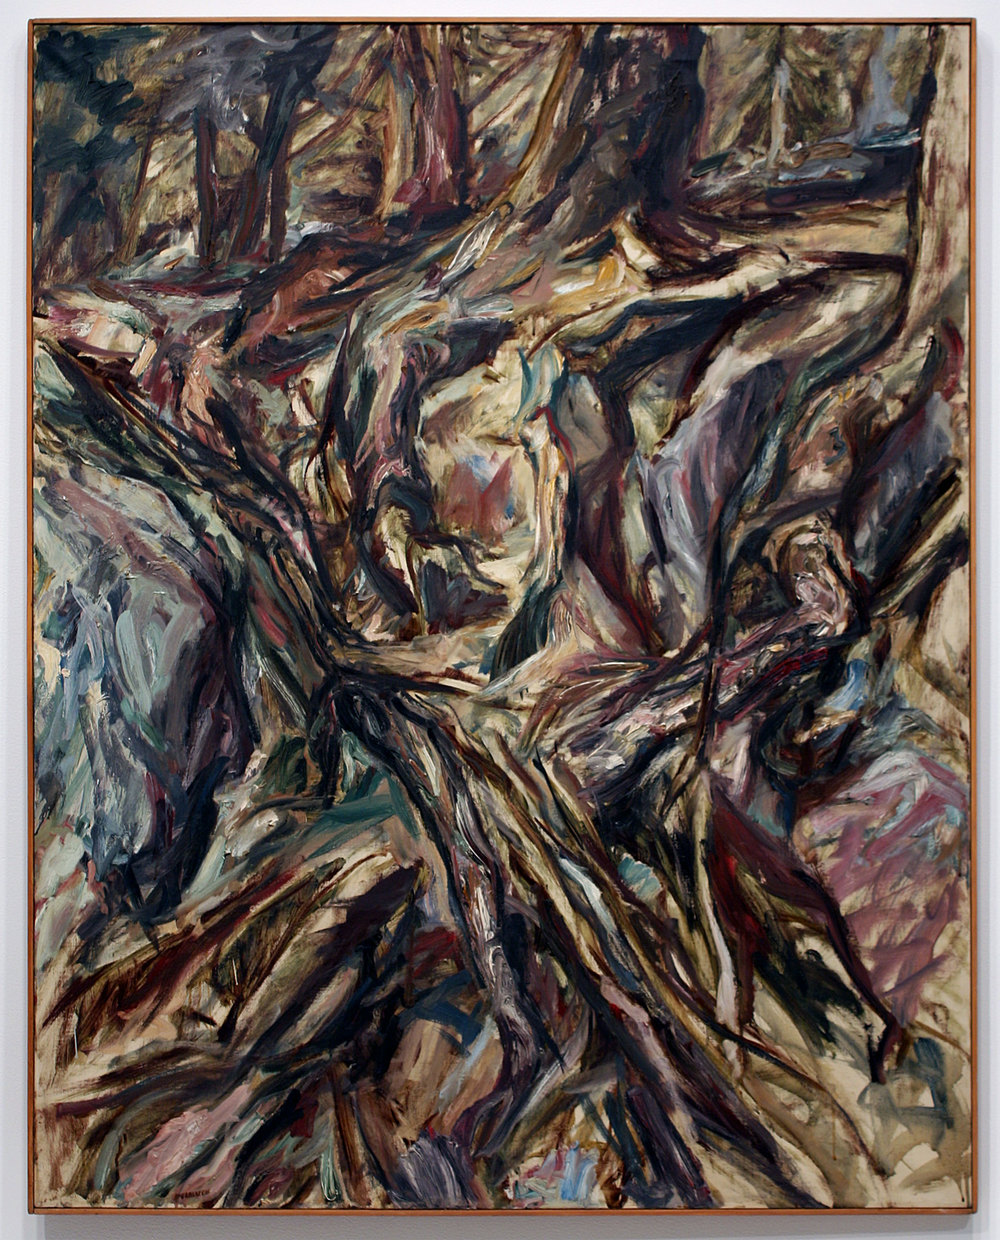 TREE ROOTS , 1957 Oil on canvas 50 x 40 inches